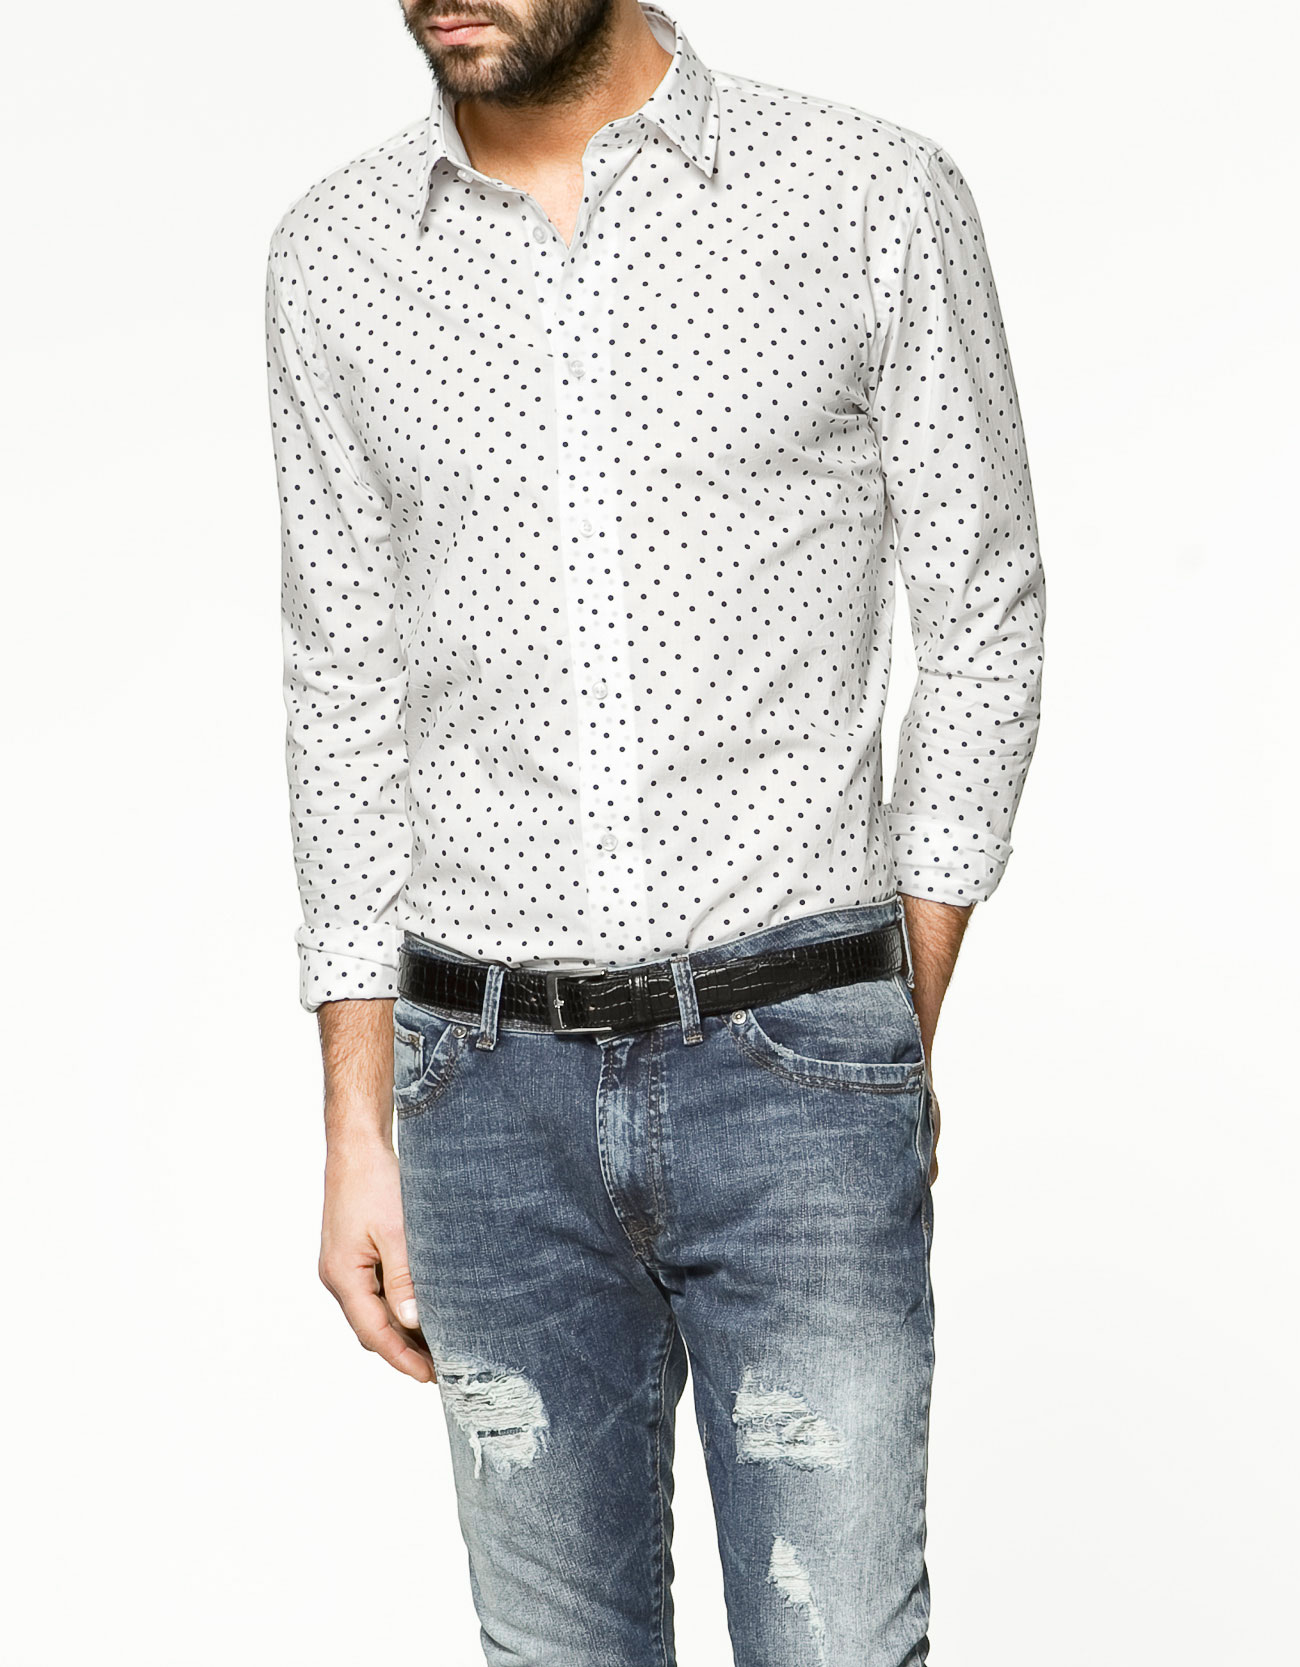 White Polka Dot Shirt Mens